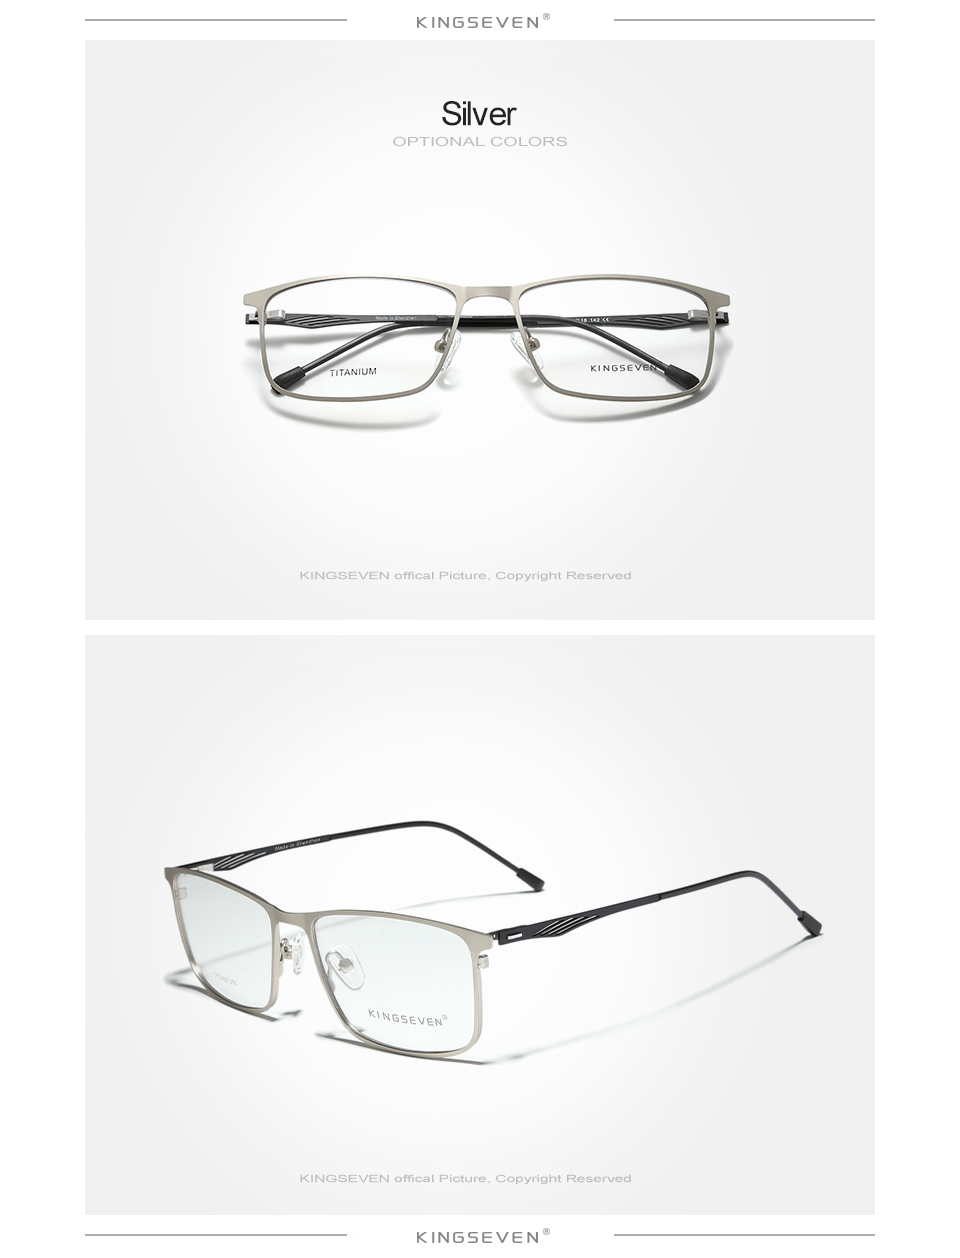 KINGSEVEN Titanium Alloy Optical Glasses Frame Men 2020 Square Myopia Prescription Eyeglasses Male Metal Eyewear